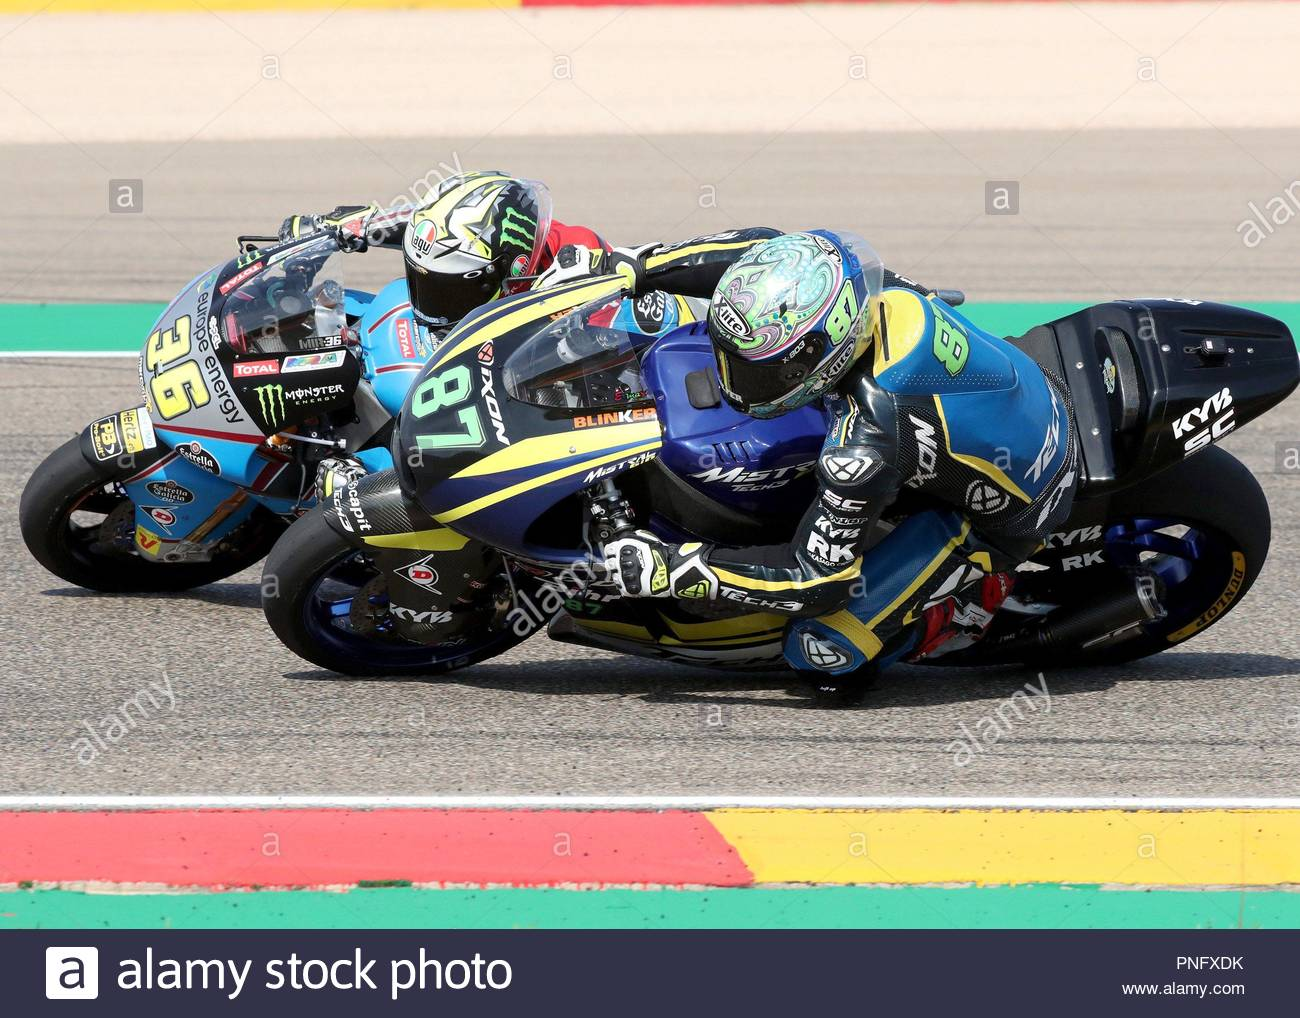 alcaniz spain 21st september 2018 spanish moto2 rider joan mir of eg 0 0 l and austrian remy gardner od tech3 racing take part in the free training session at motorland argaon circuit in alcaniz spain 21 september 2018 the motorcycling grand prix of aragon will take place on 23 september 2018 efe javier cebollada credit efe news agencyalamy live news PNFXDK